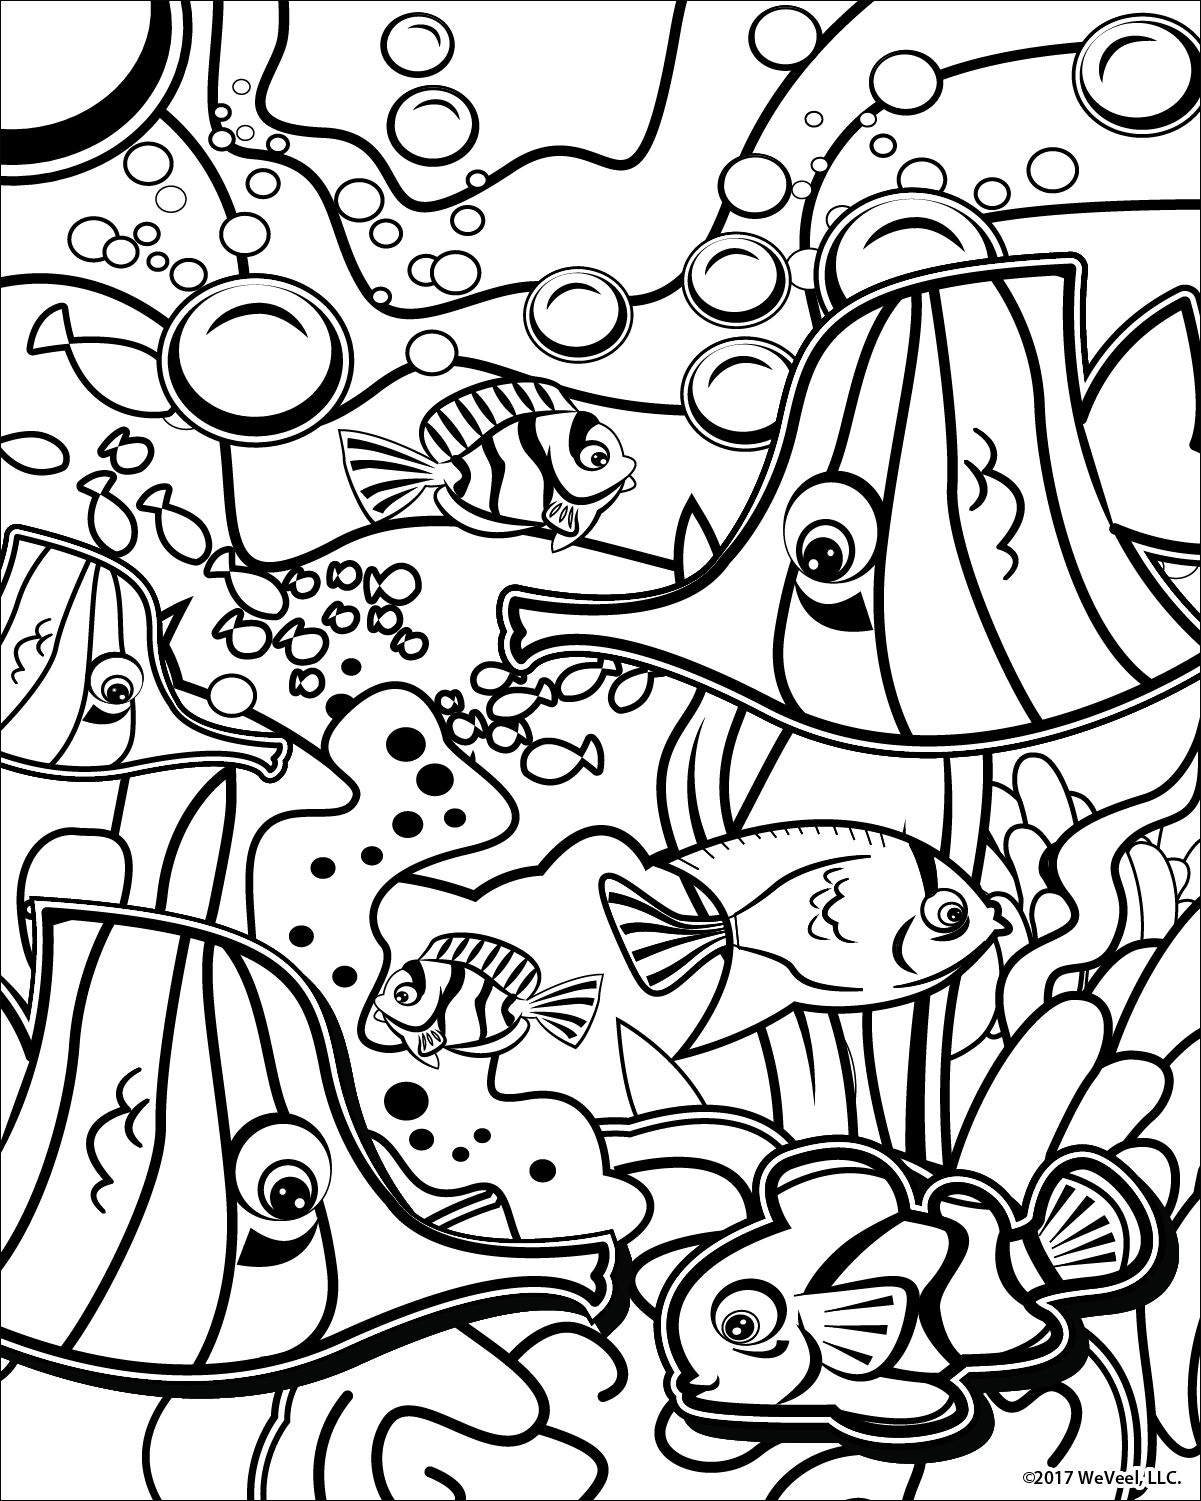 Coloring Pages Sea Life Cute Coloring Pages Candy Coloring Pages Free Kids Coloring Pages